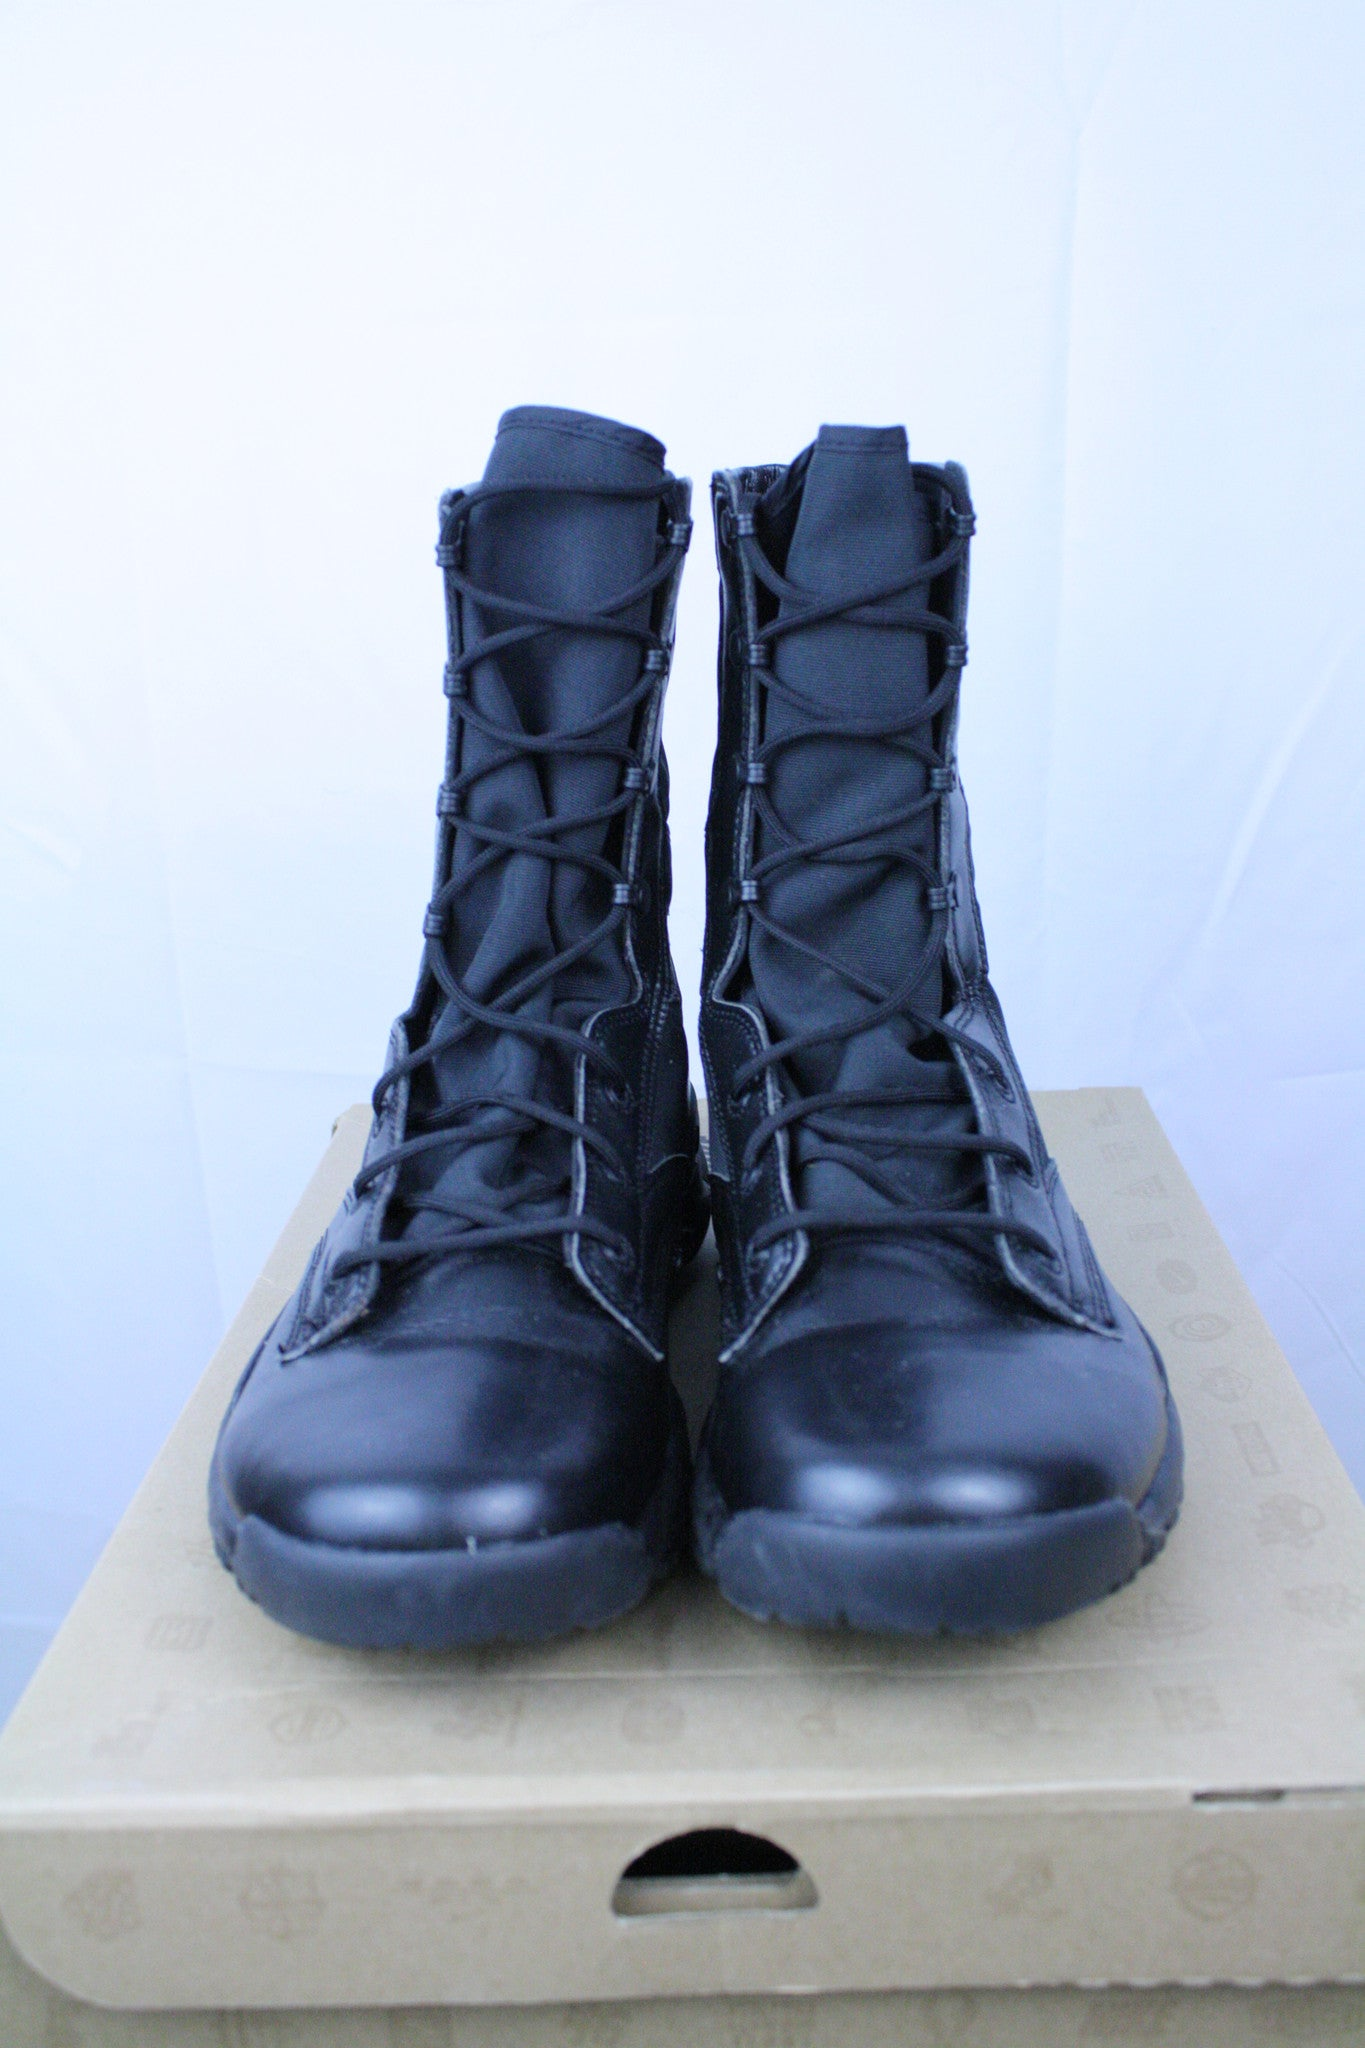 269f96f2a15a33 Nike Special Field Boot (Black Leather) - 11 – Rhetorik s Closet